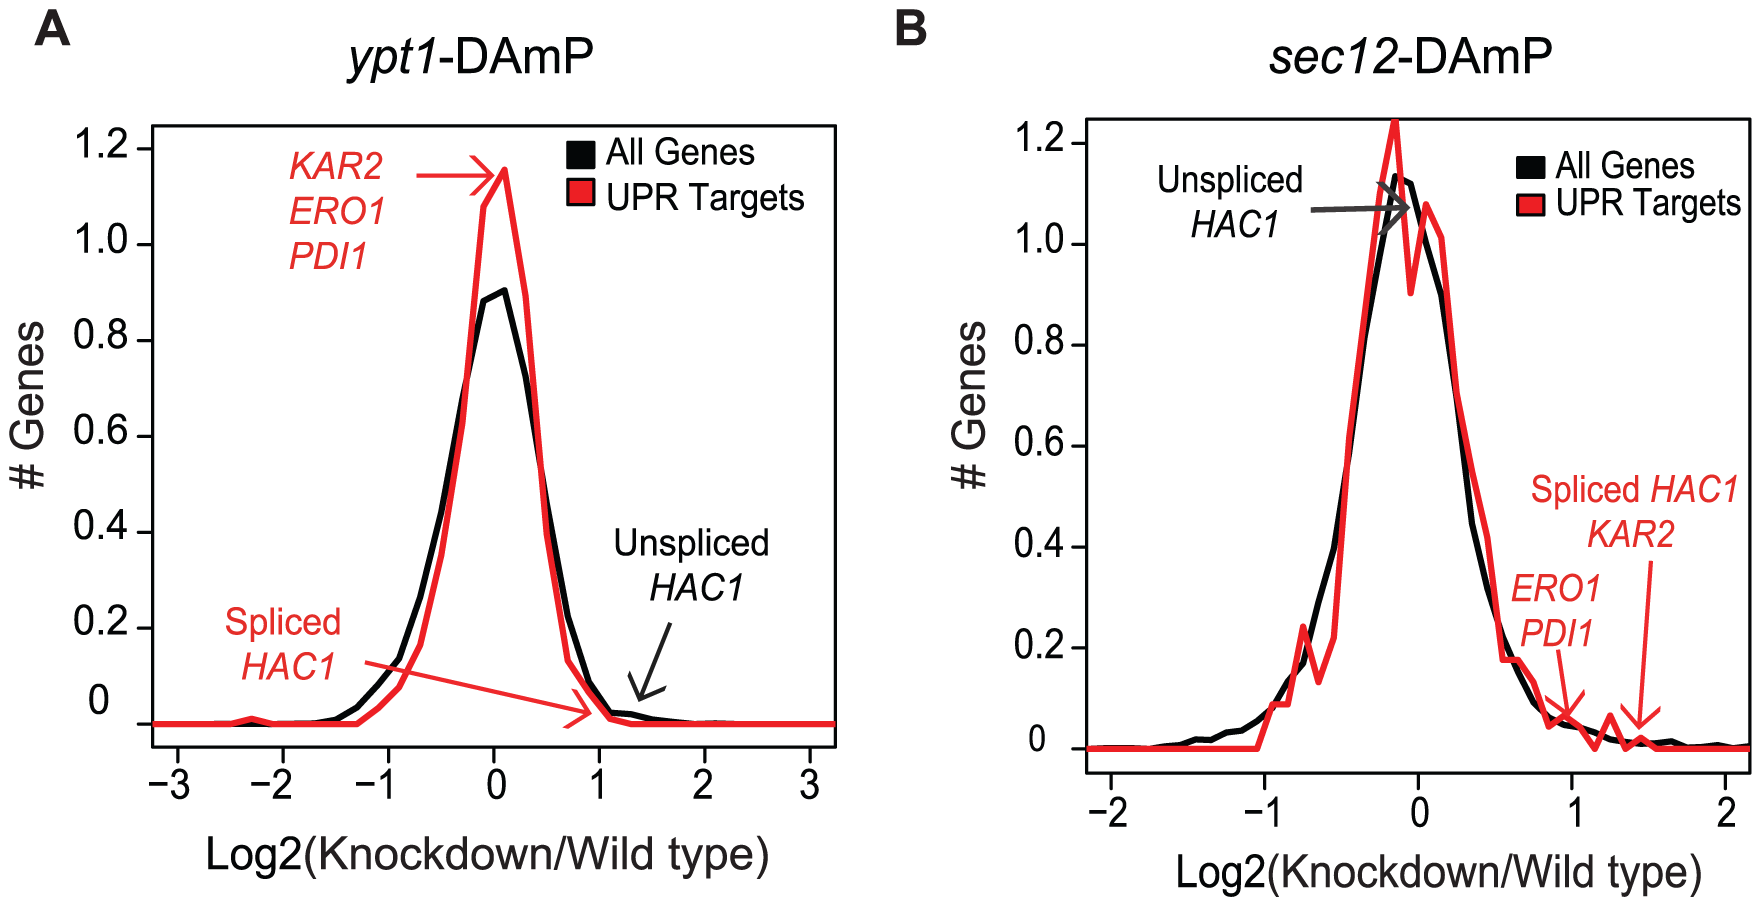 Ypt1 knockdown affects <i>HAC1</i> <b>splicing and expression.</b>